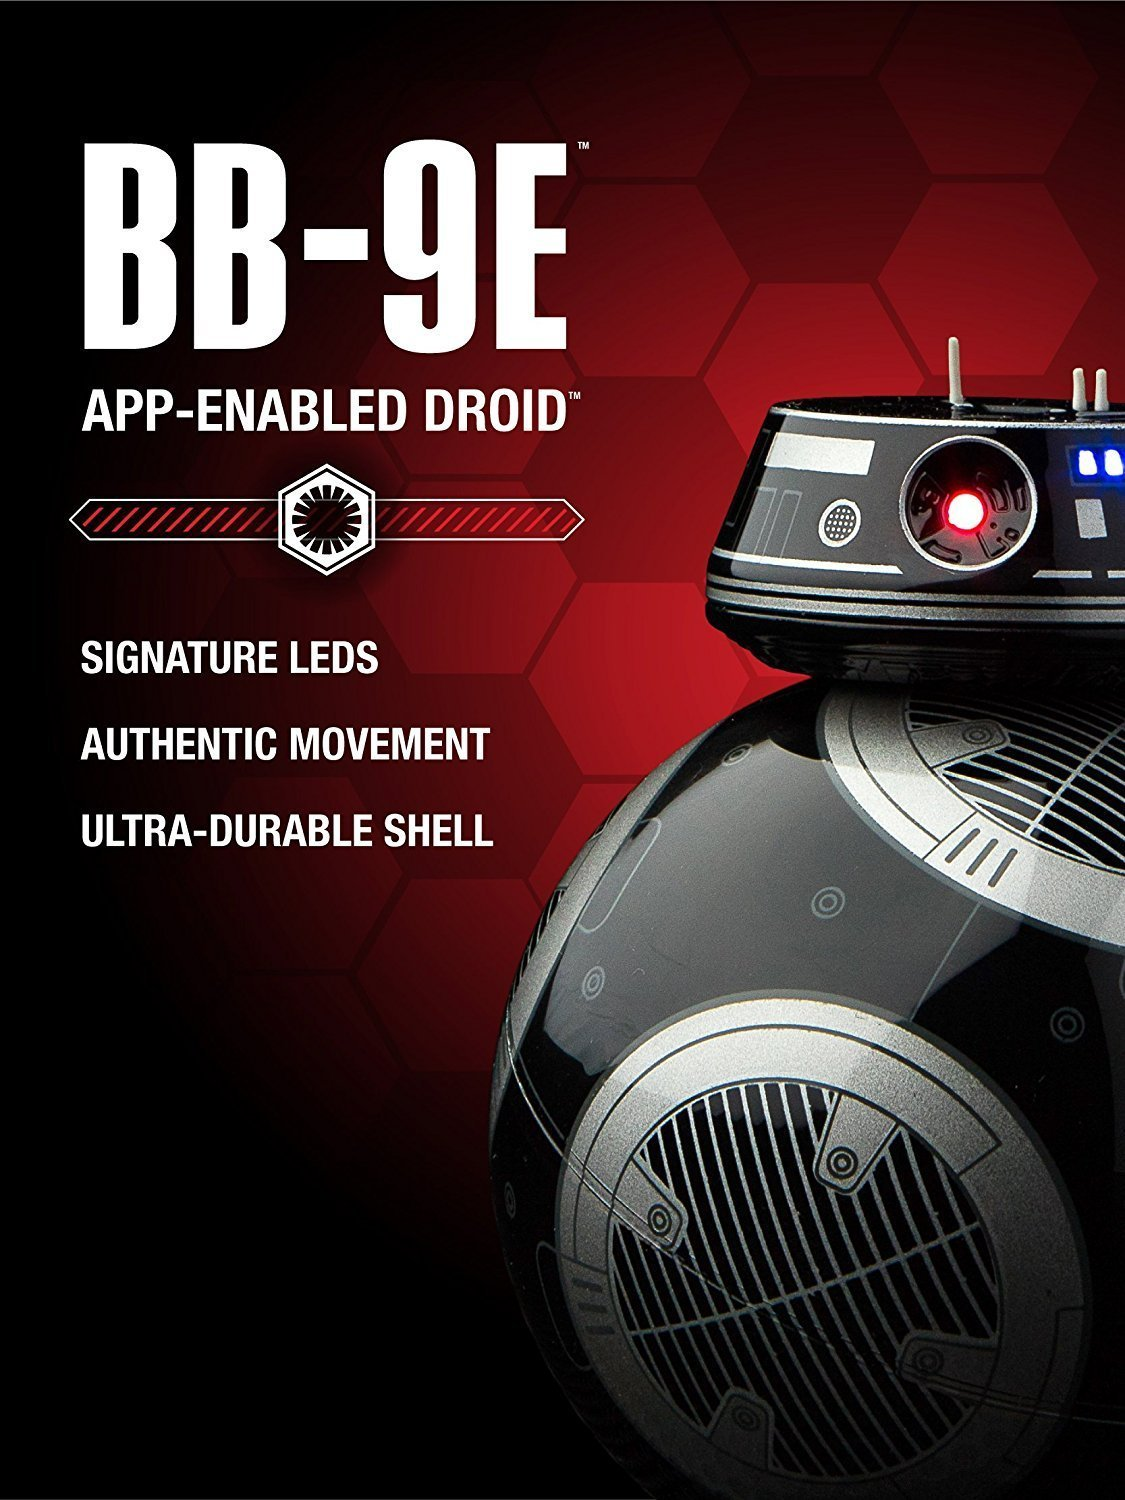 Sphero BB9E Droid Smart Robot [Certified Refurbished] image